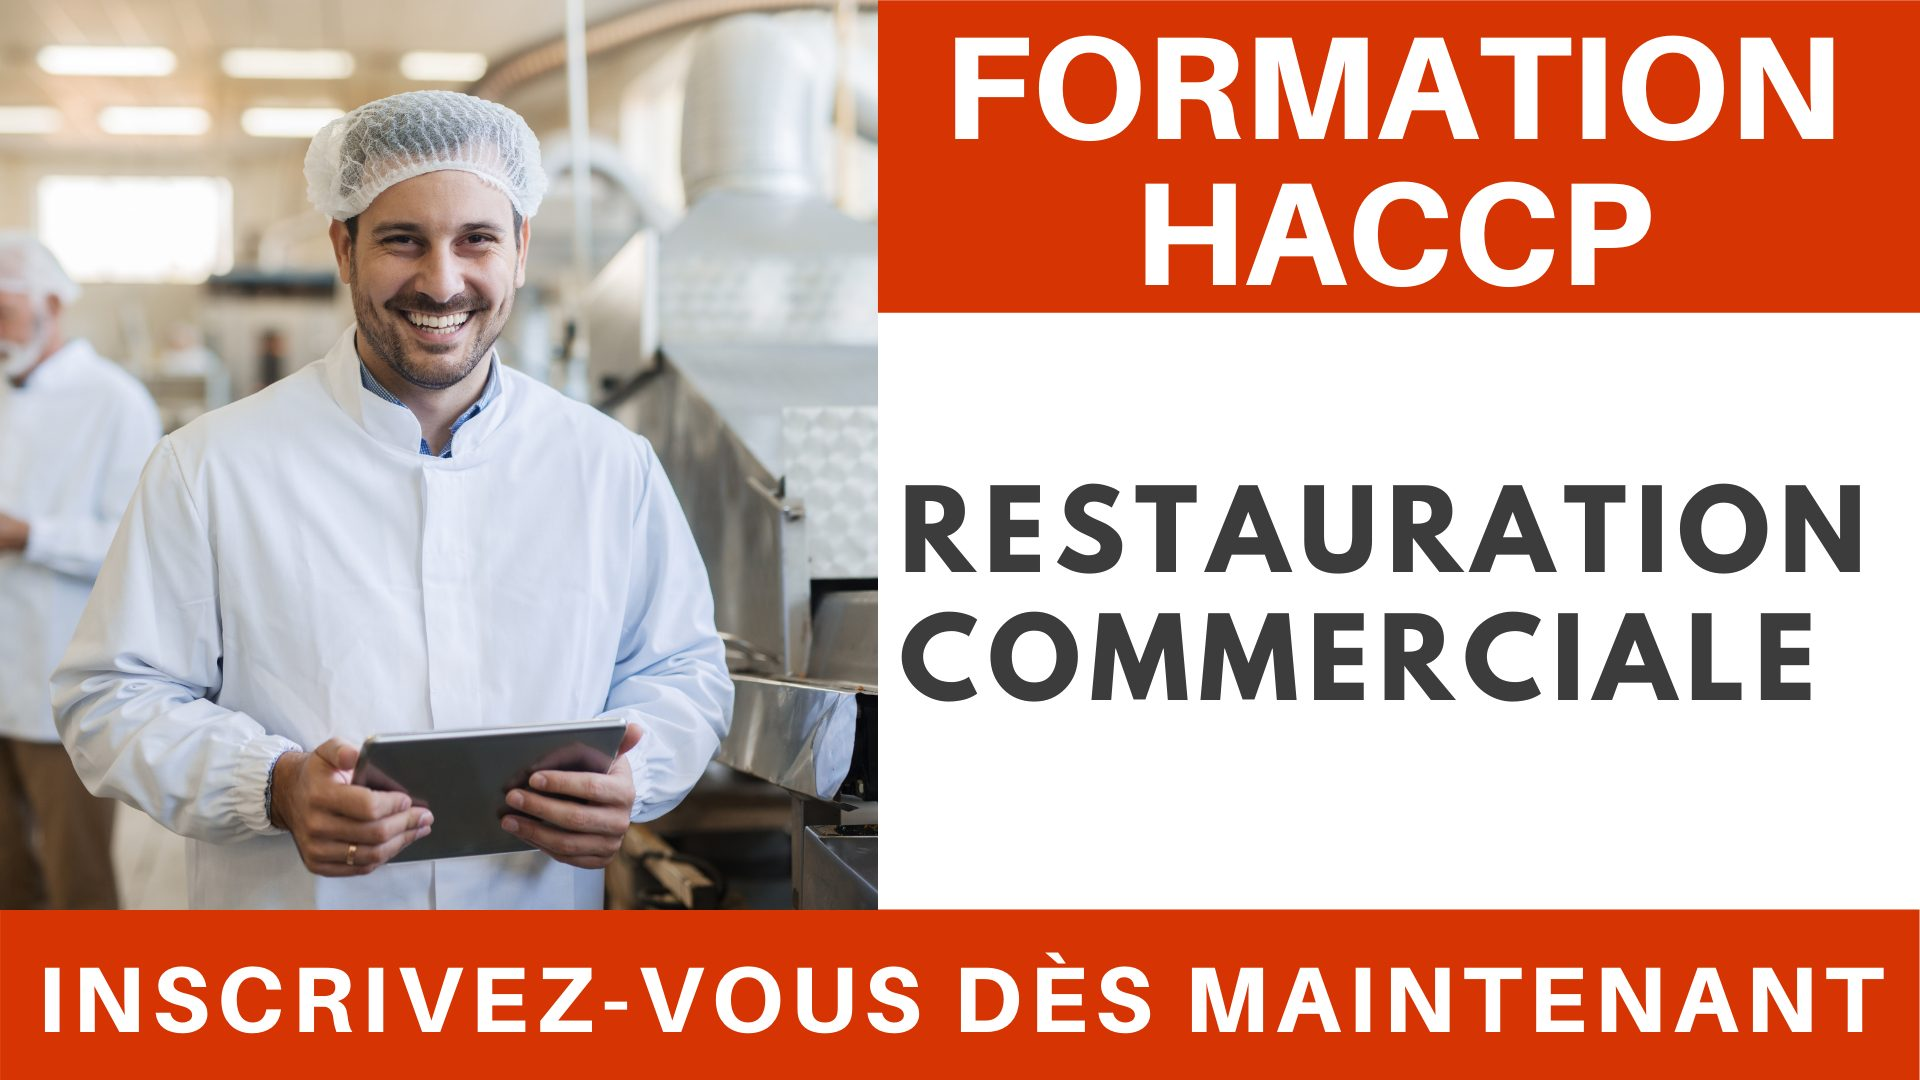 Formation HACCP - Restauration commerciale